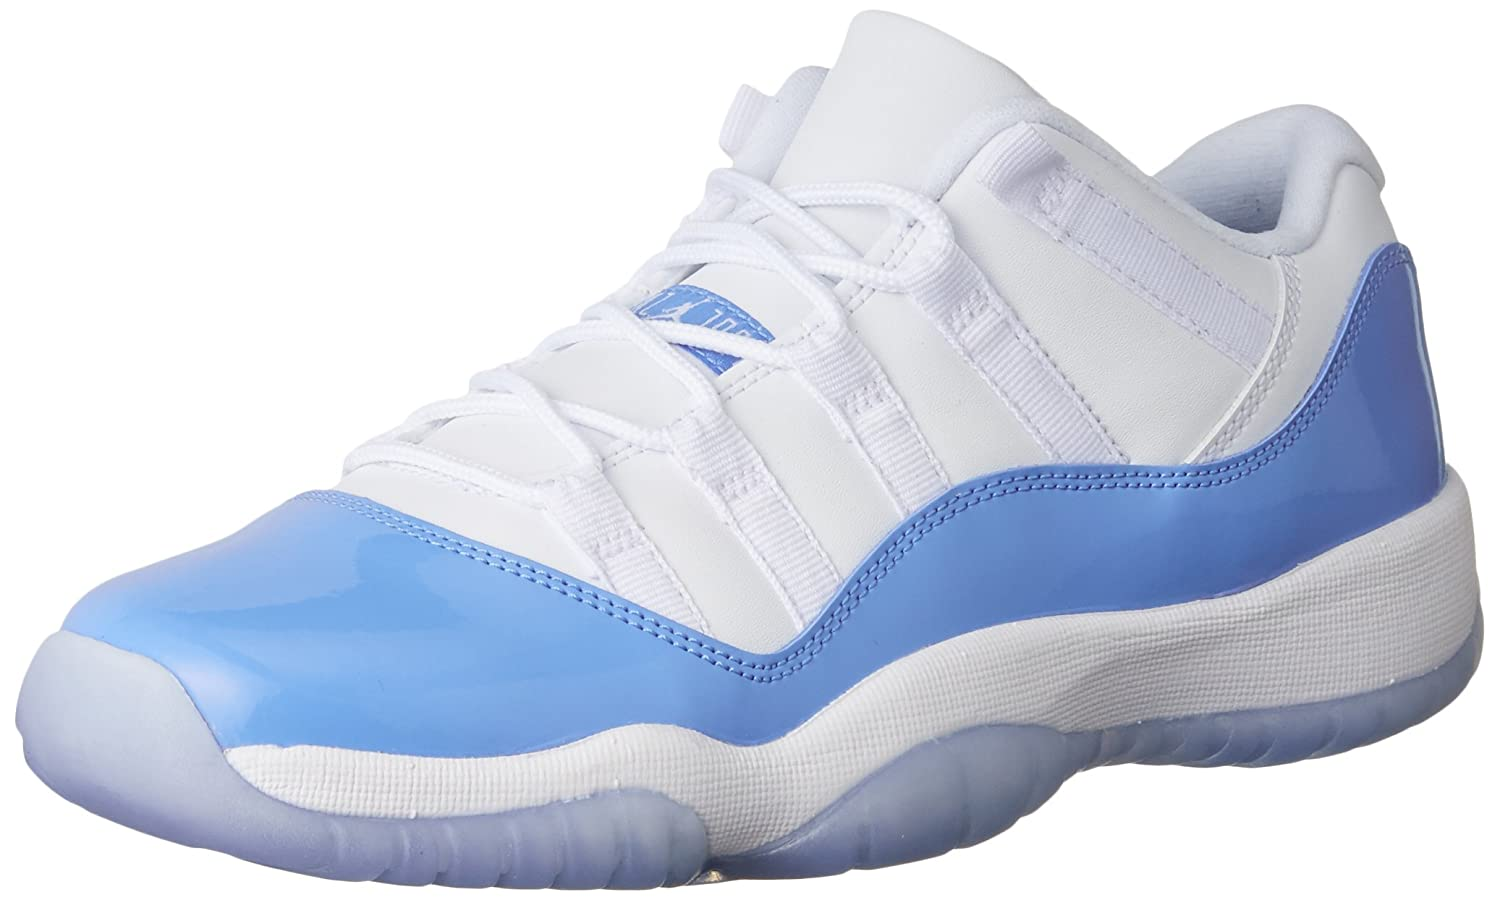 ca5f19a894e2 AIR JORDAN 11 Retro Low BG (GS)  Carolina  - 528896-106 - US Size  Nike   Amazon.co.uk  Shoes   Bags